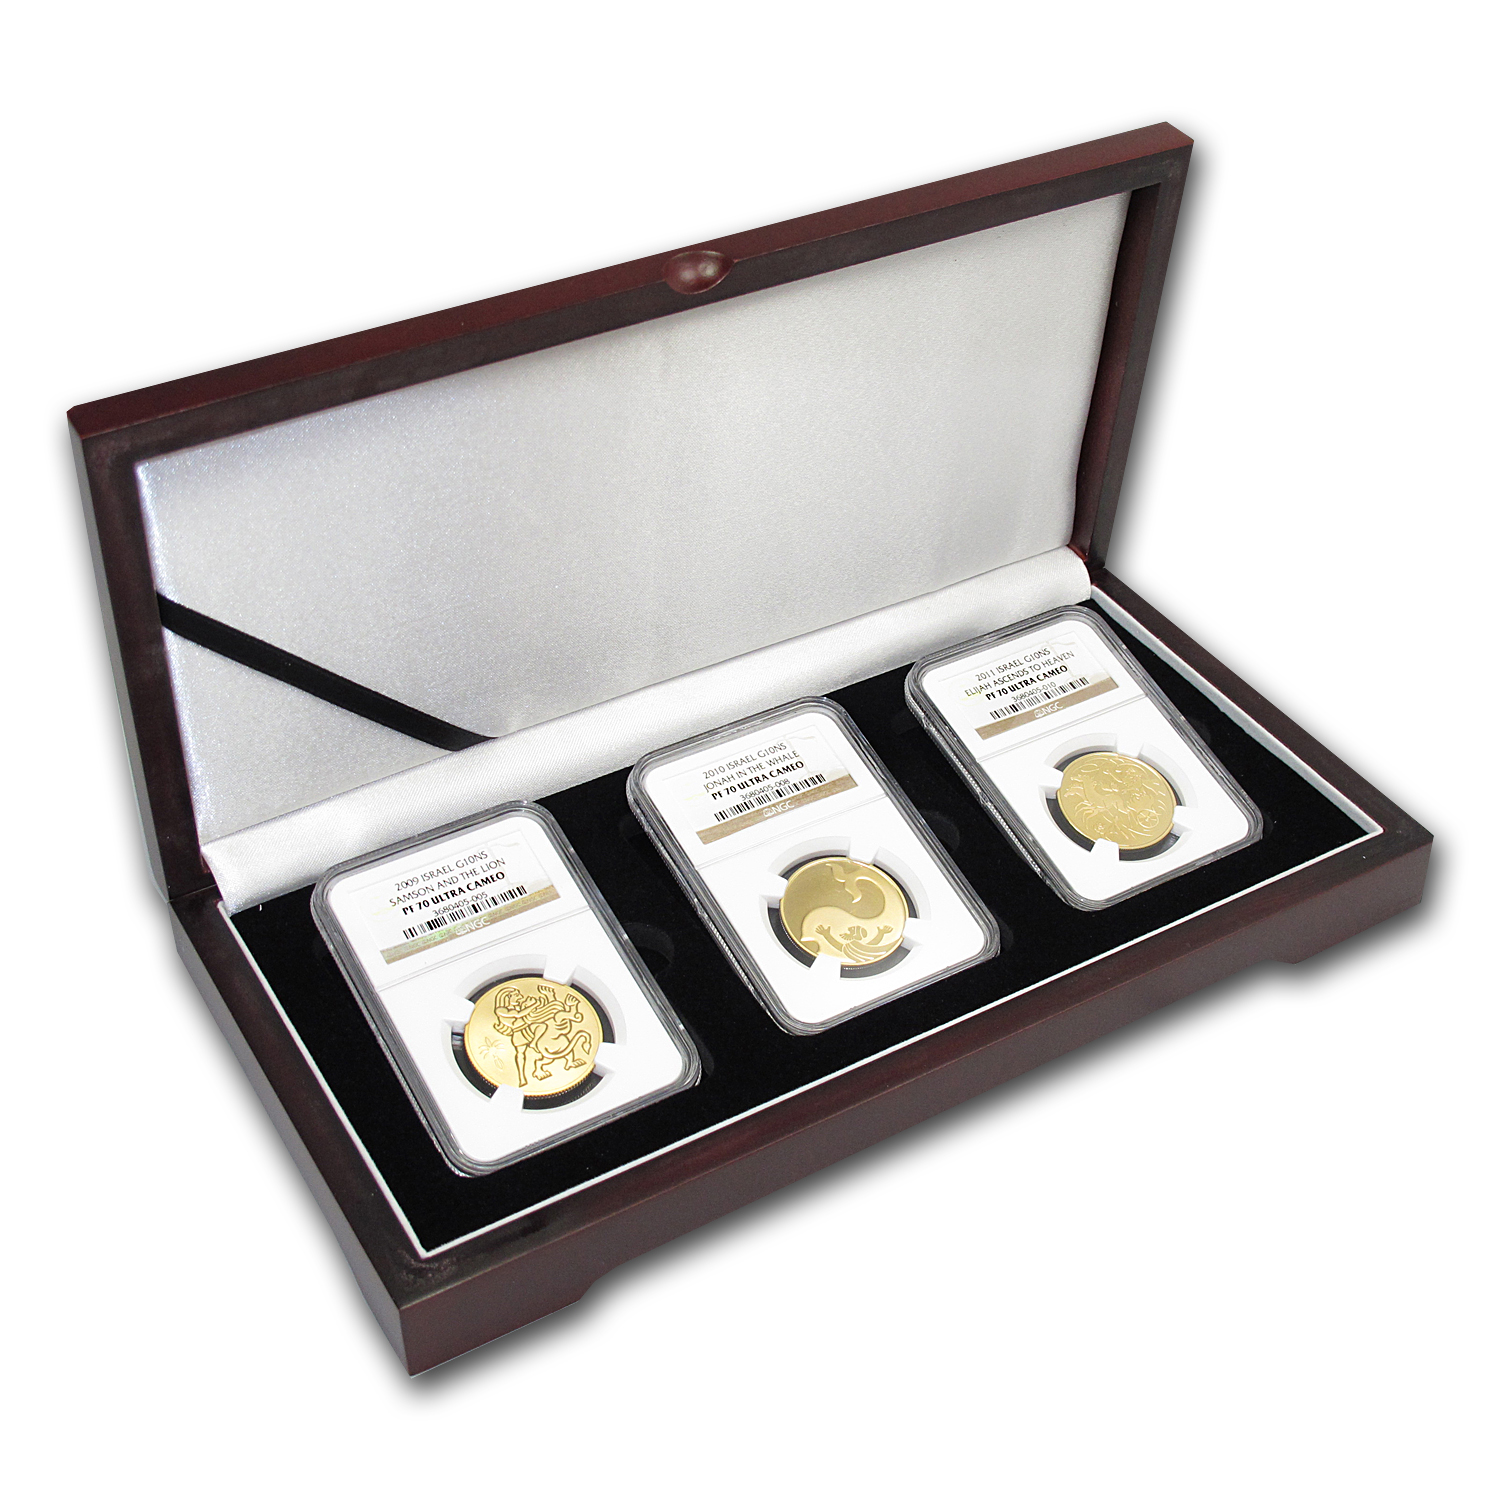 Israel Biblical Art Series 1/2 oz Gold 3 Coin PF-70 NGC Set